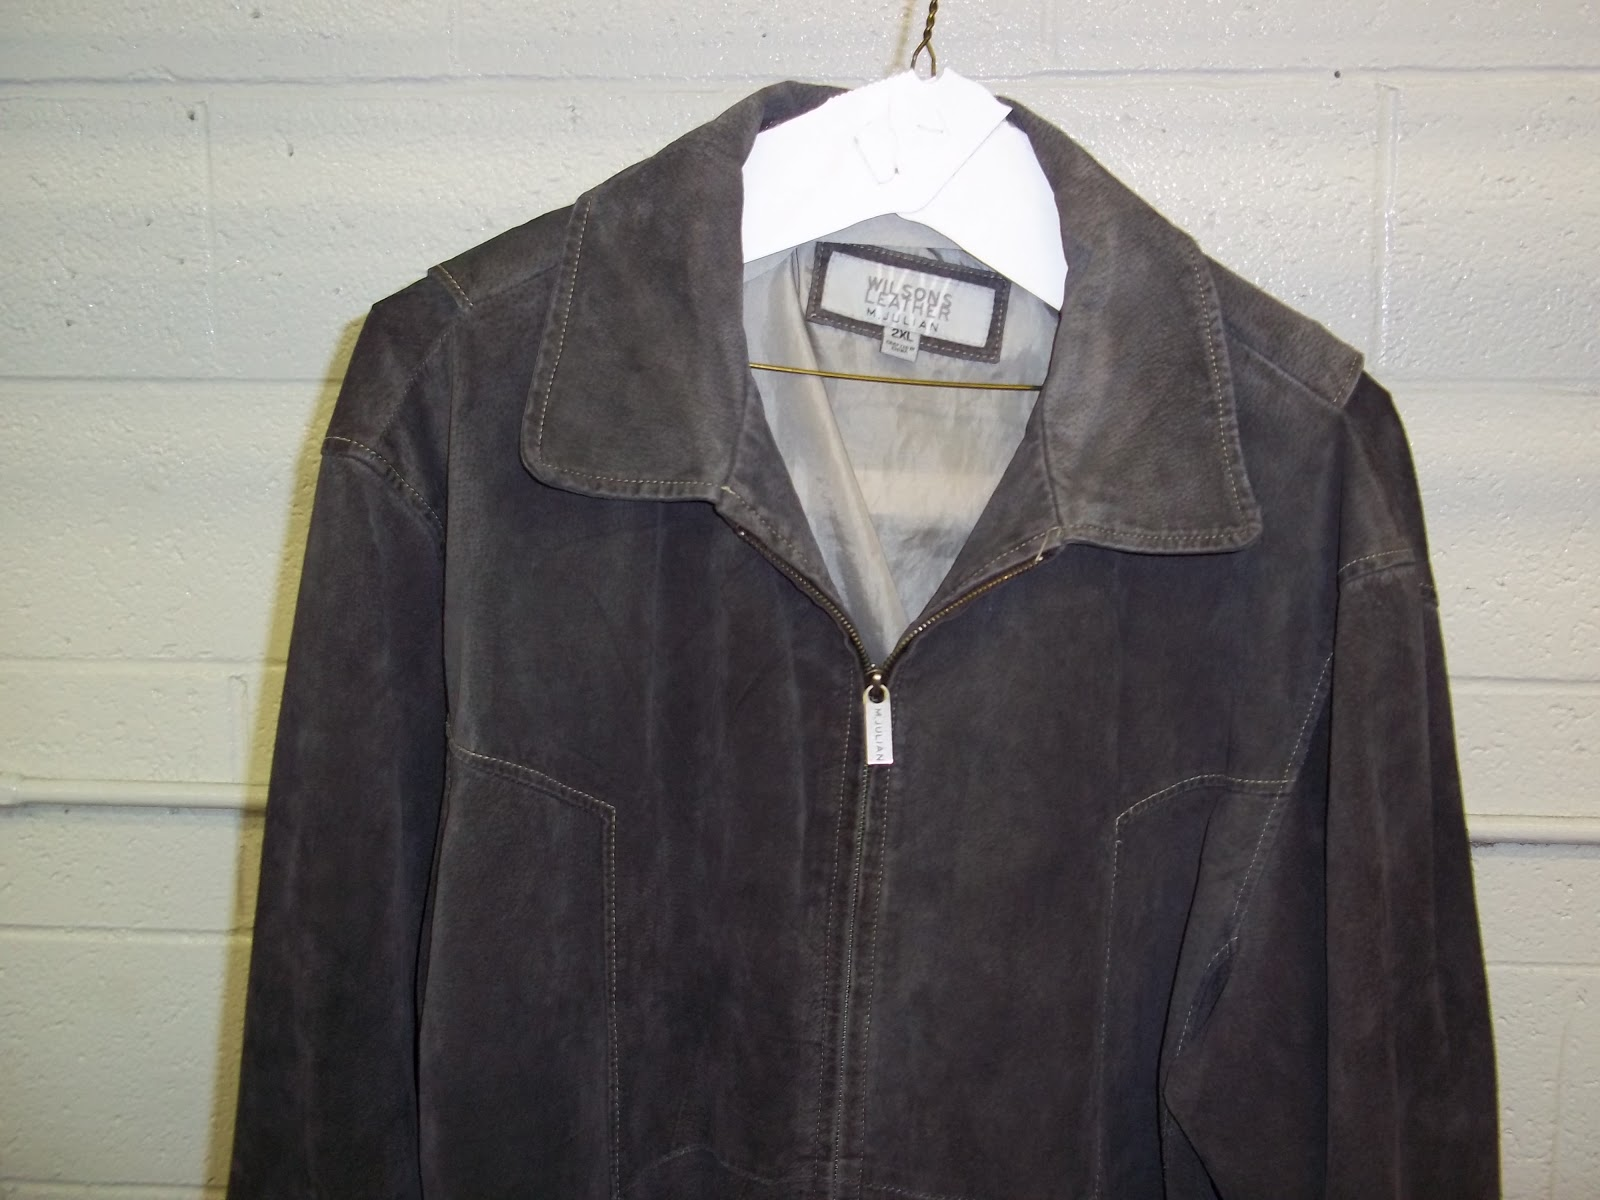 Leather jacket care - It Was Obvious To Me That The Previous Cleaner Had No Experience In Cleaning Leather Properly This Is A Common Mistake By Dry Cleaners Who Think That